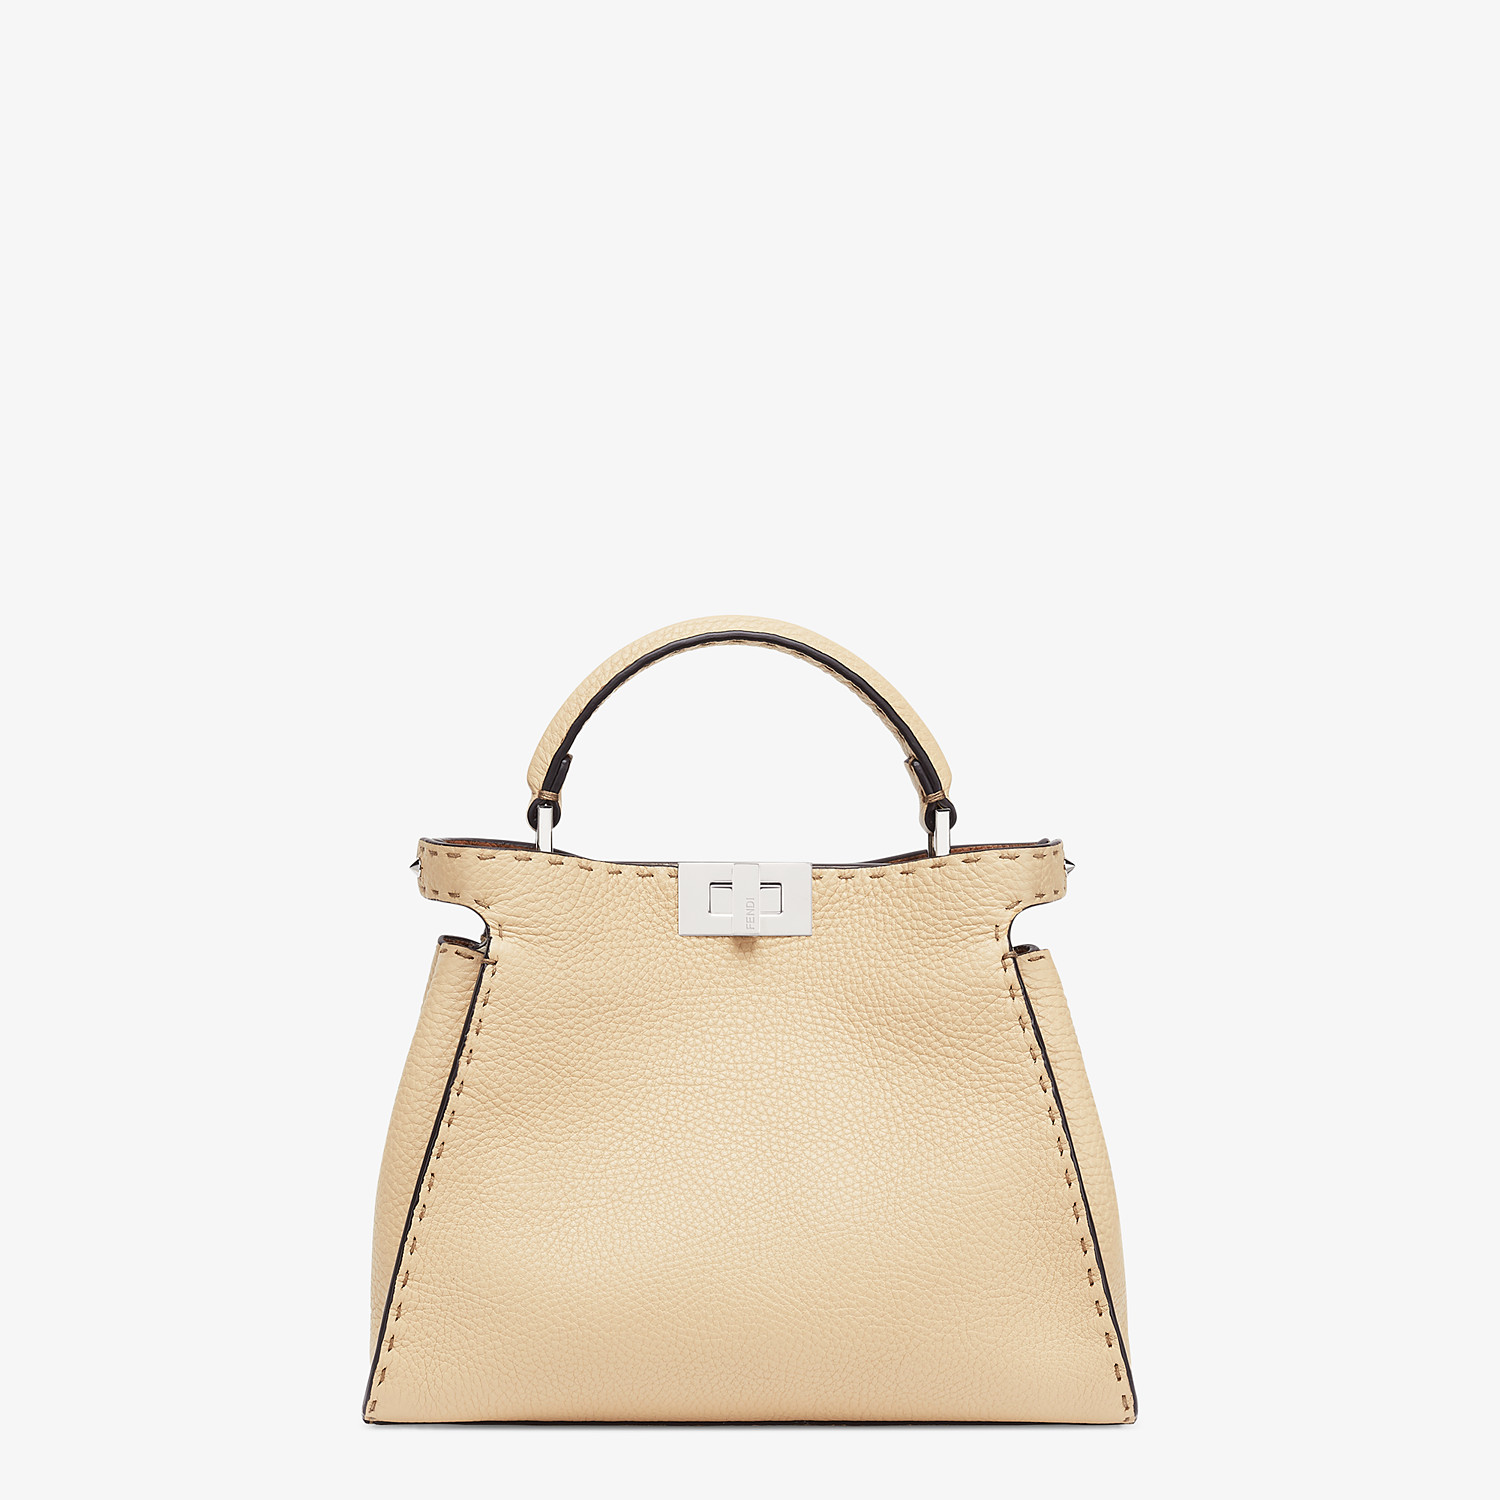 FENDI PEEKABOO ICONIC ESSENTIALLY - Beige Cuoio Romano leather bag - view 1 detail